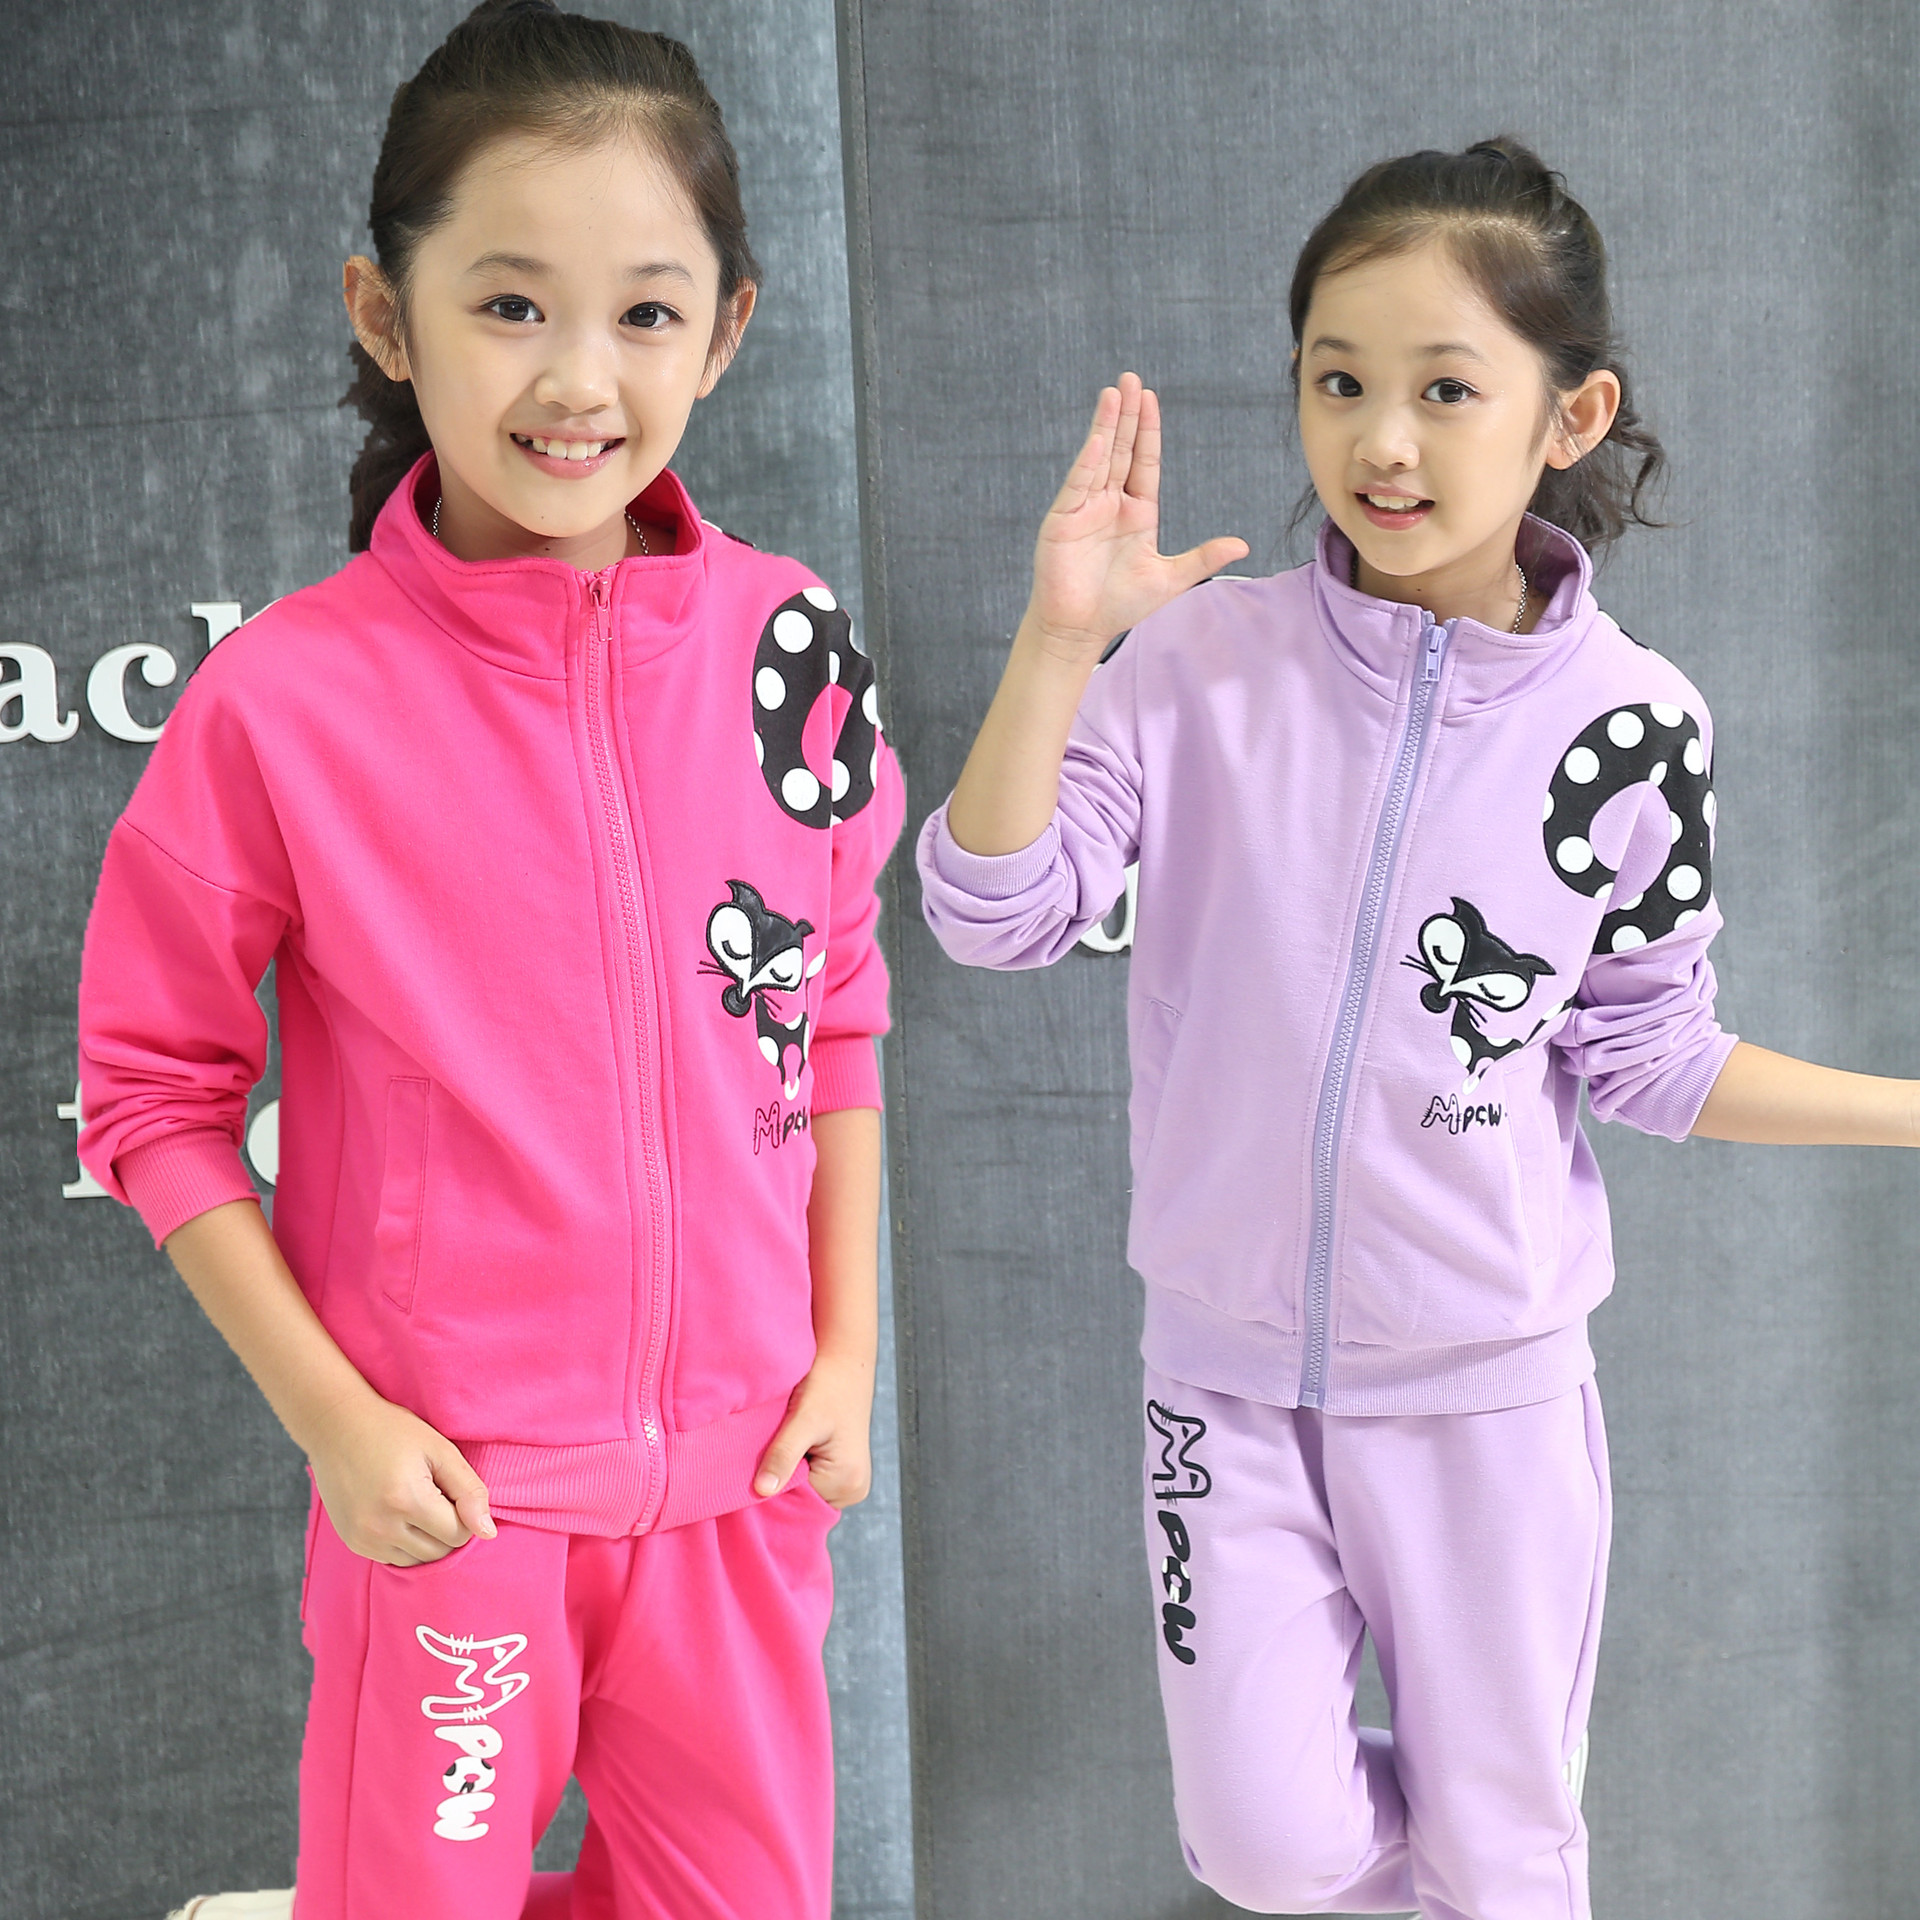 Online coloring for two year olds - Children Autumn Kids Girls New Long Sleeved Two Piece Sports Suit Fox Printed Clothes 4 Colour